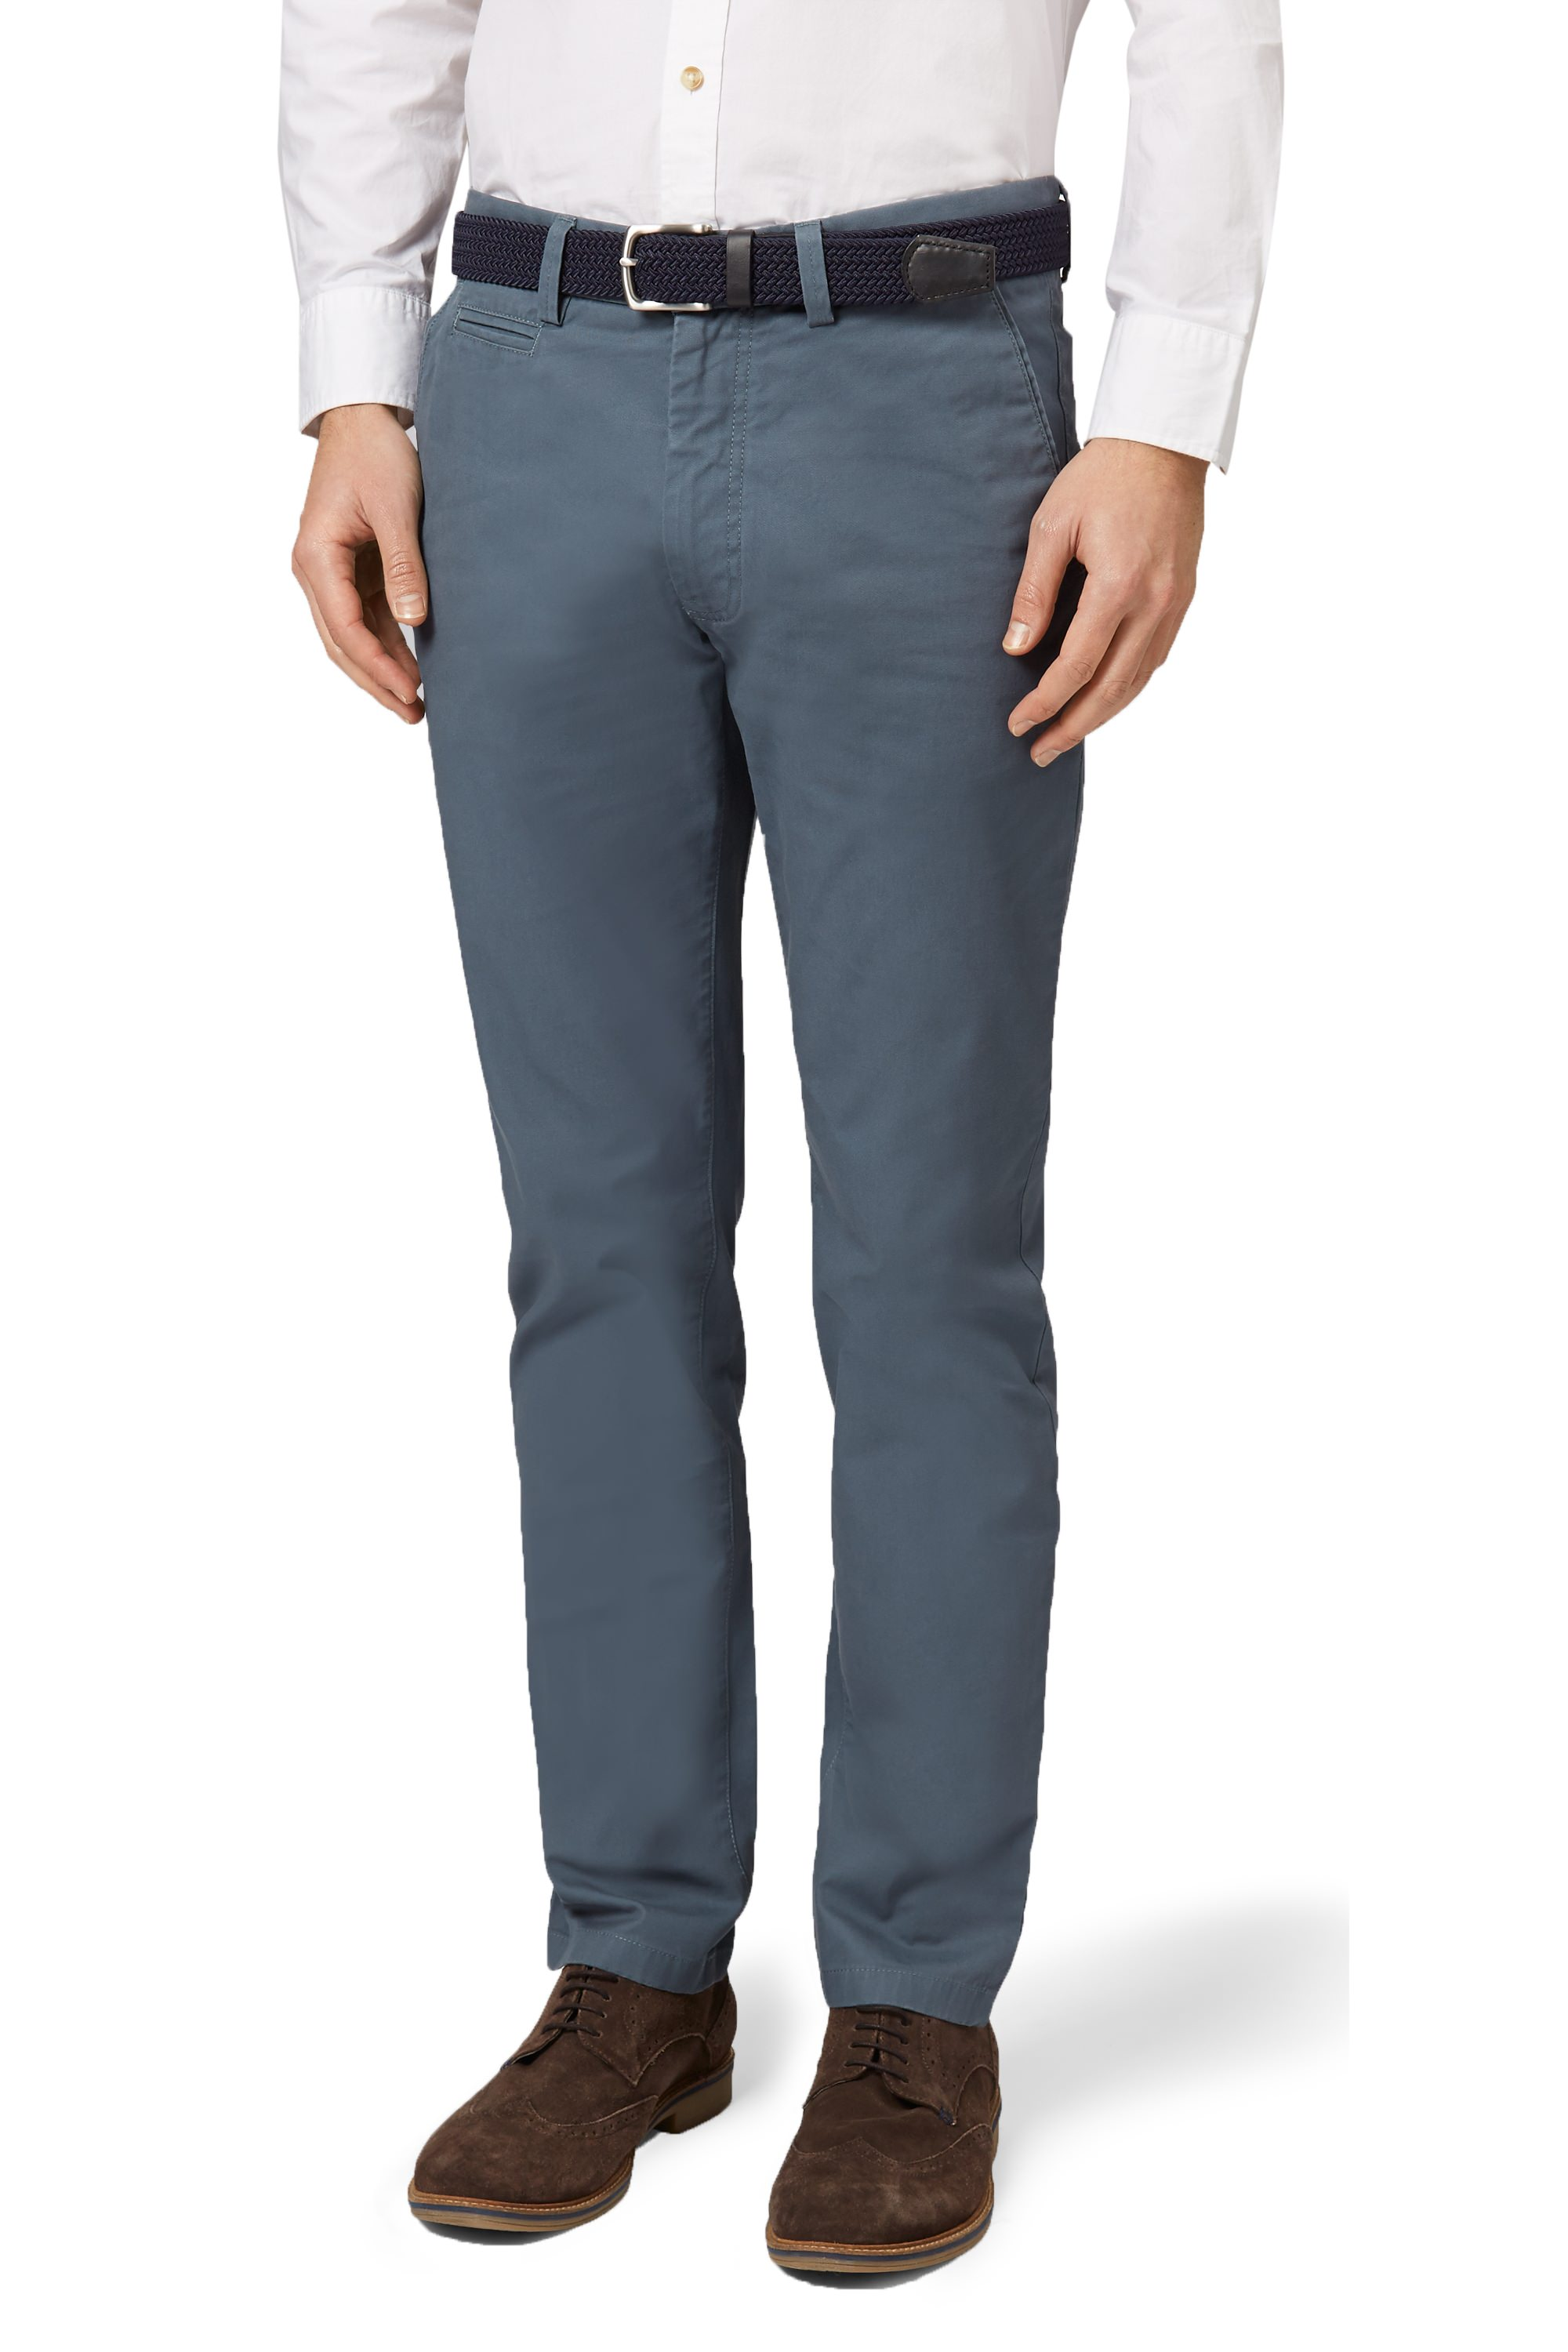 Moss 1851 Mens Blue Chinos Tailored Fit Cotton Trousers ...